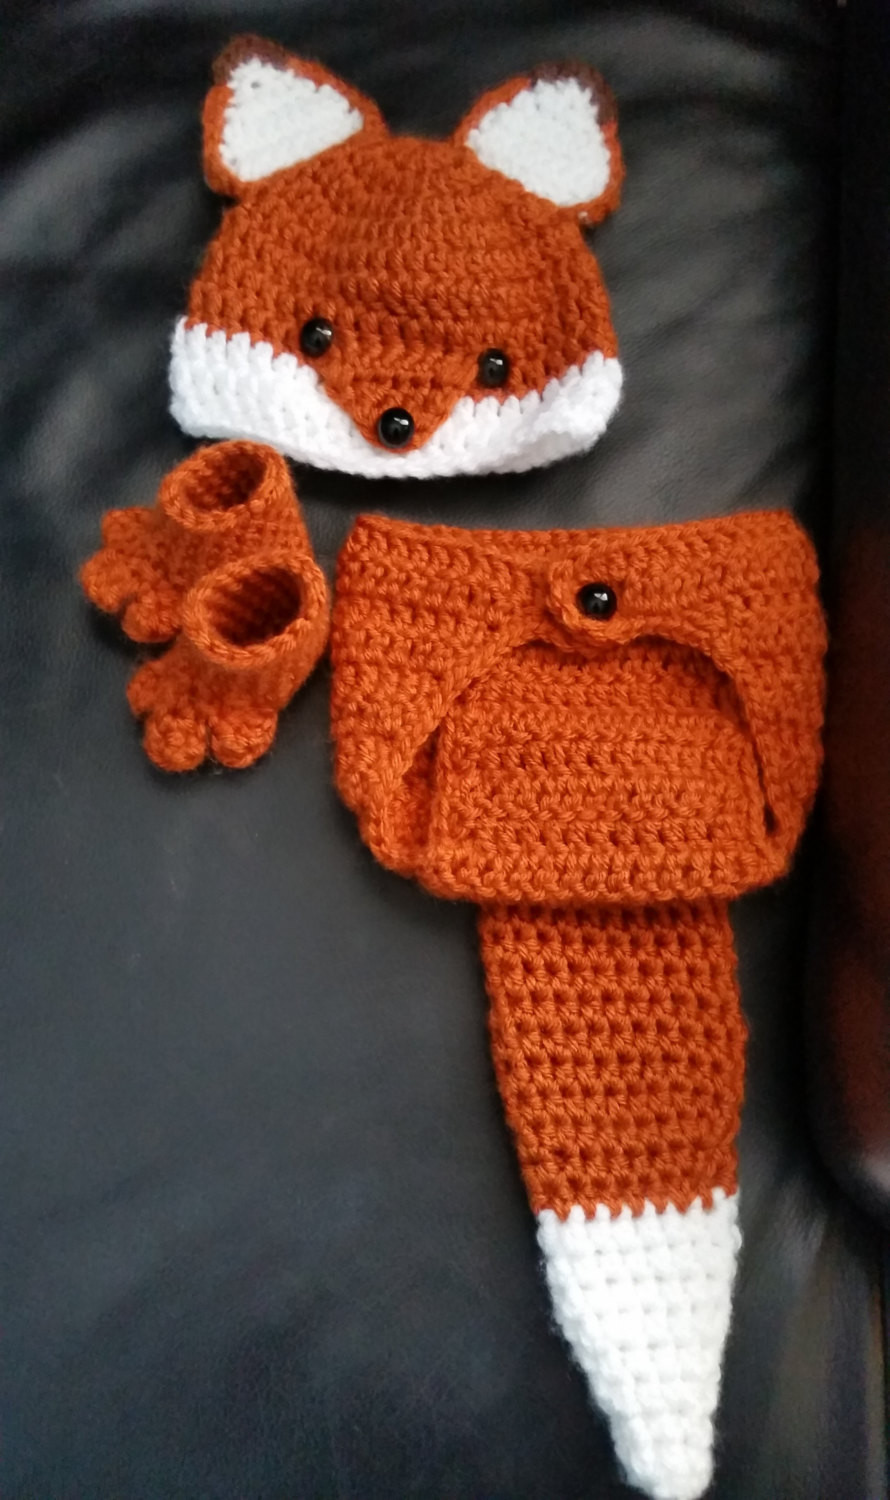 Crochet Baby Outfits Lovely Crochet Newborn Fox Outfit Baby Girl or Boy Woodland Costume Of Marvelous 44 Photos Crochet Baby Outfits